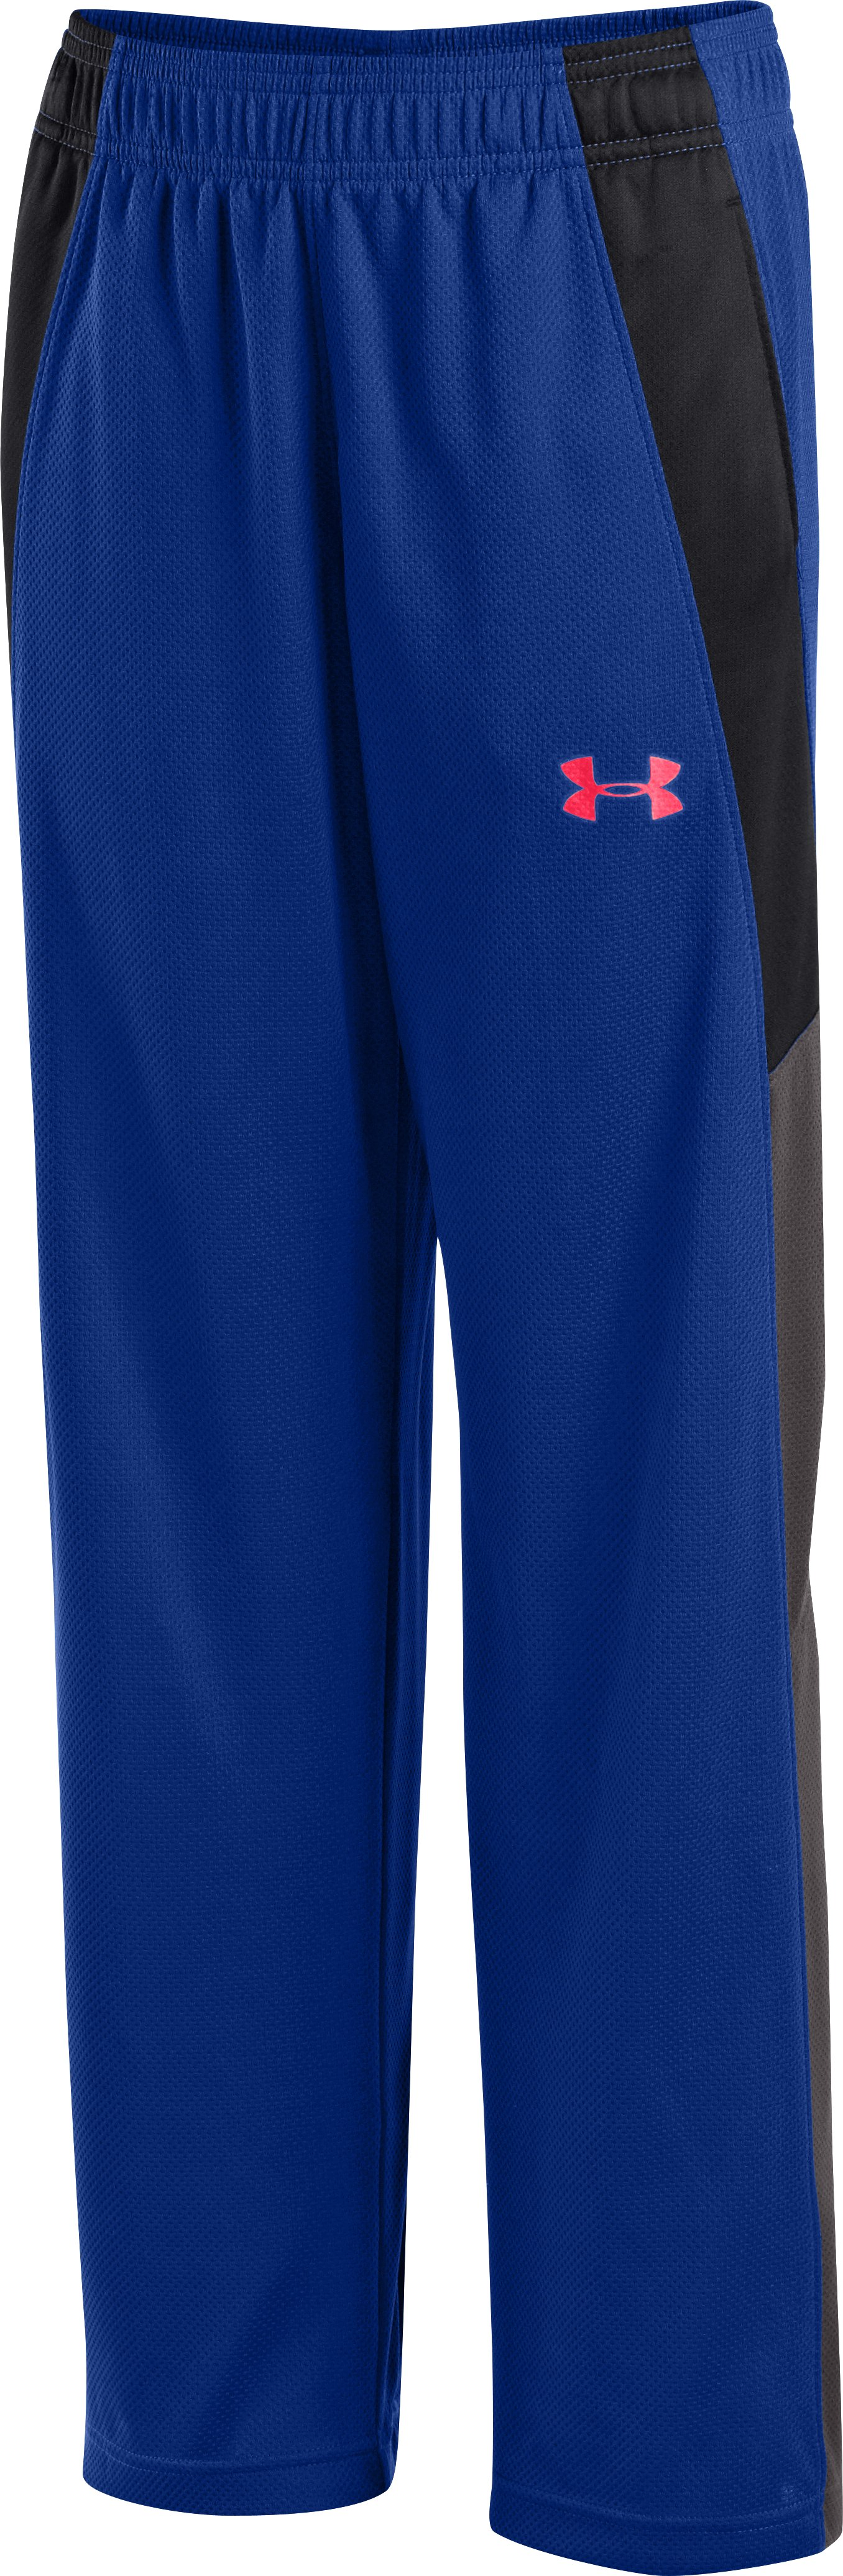 Boys' UA Hero Warm-Up Pants, Royal, zoomed image